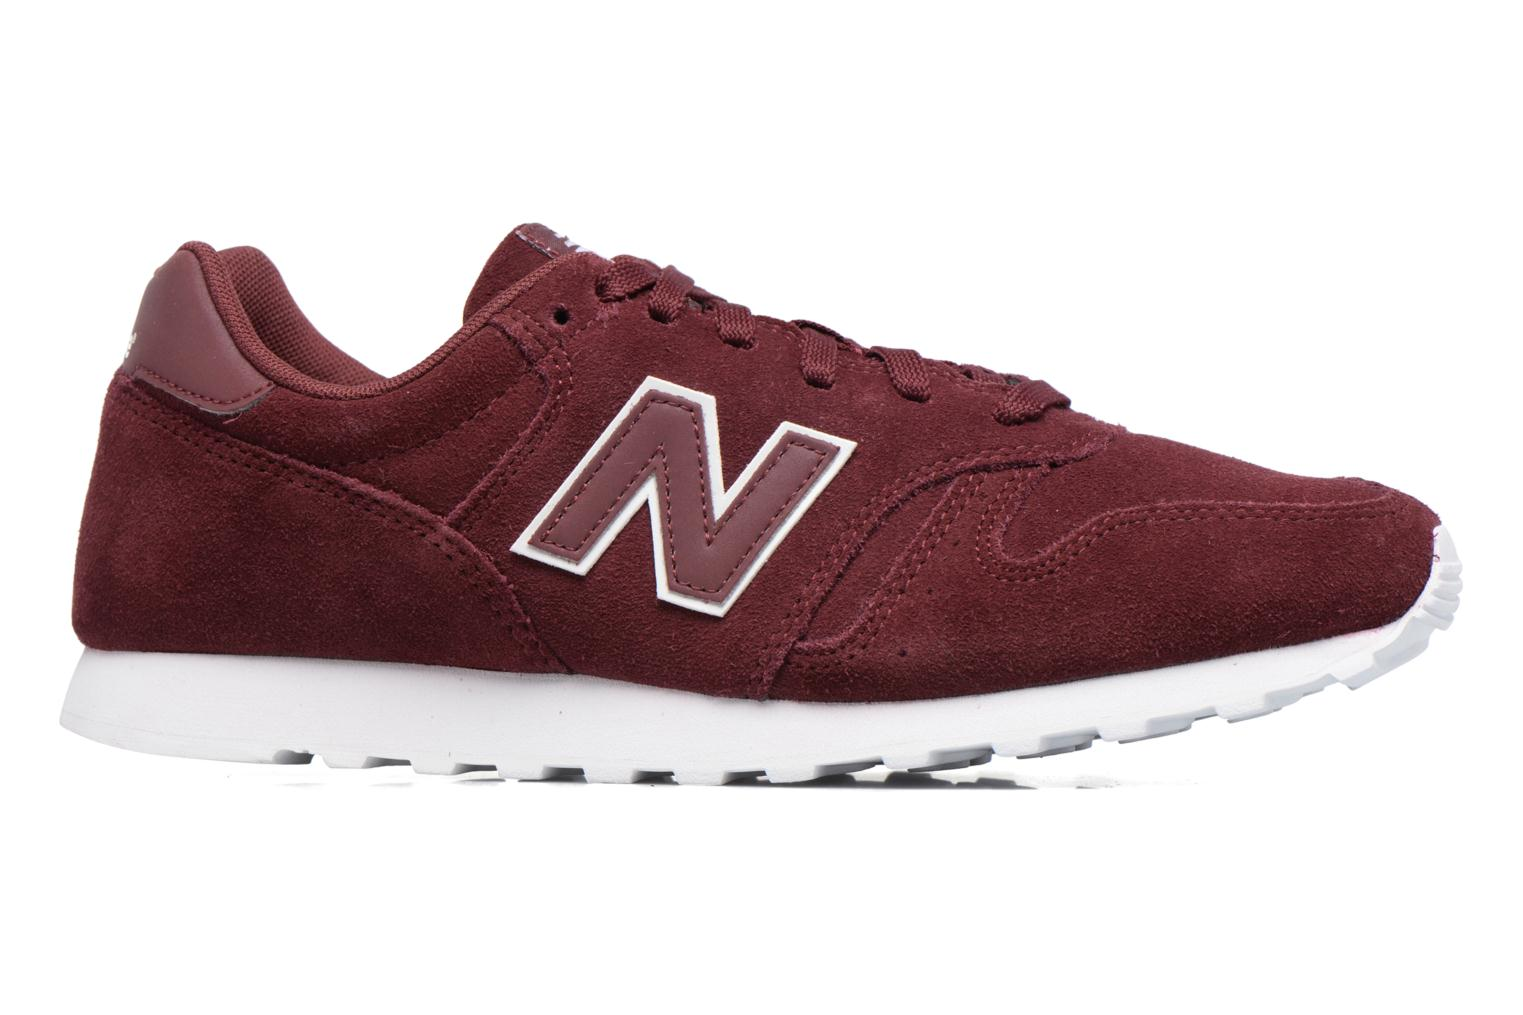 ML373 Burgundy/White